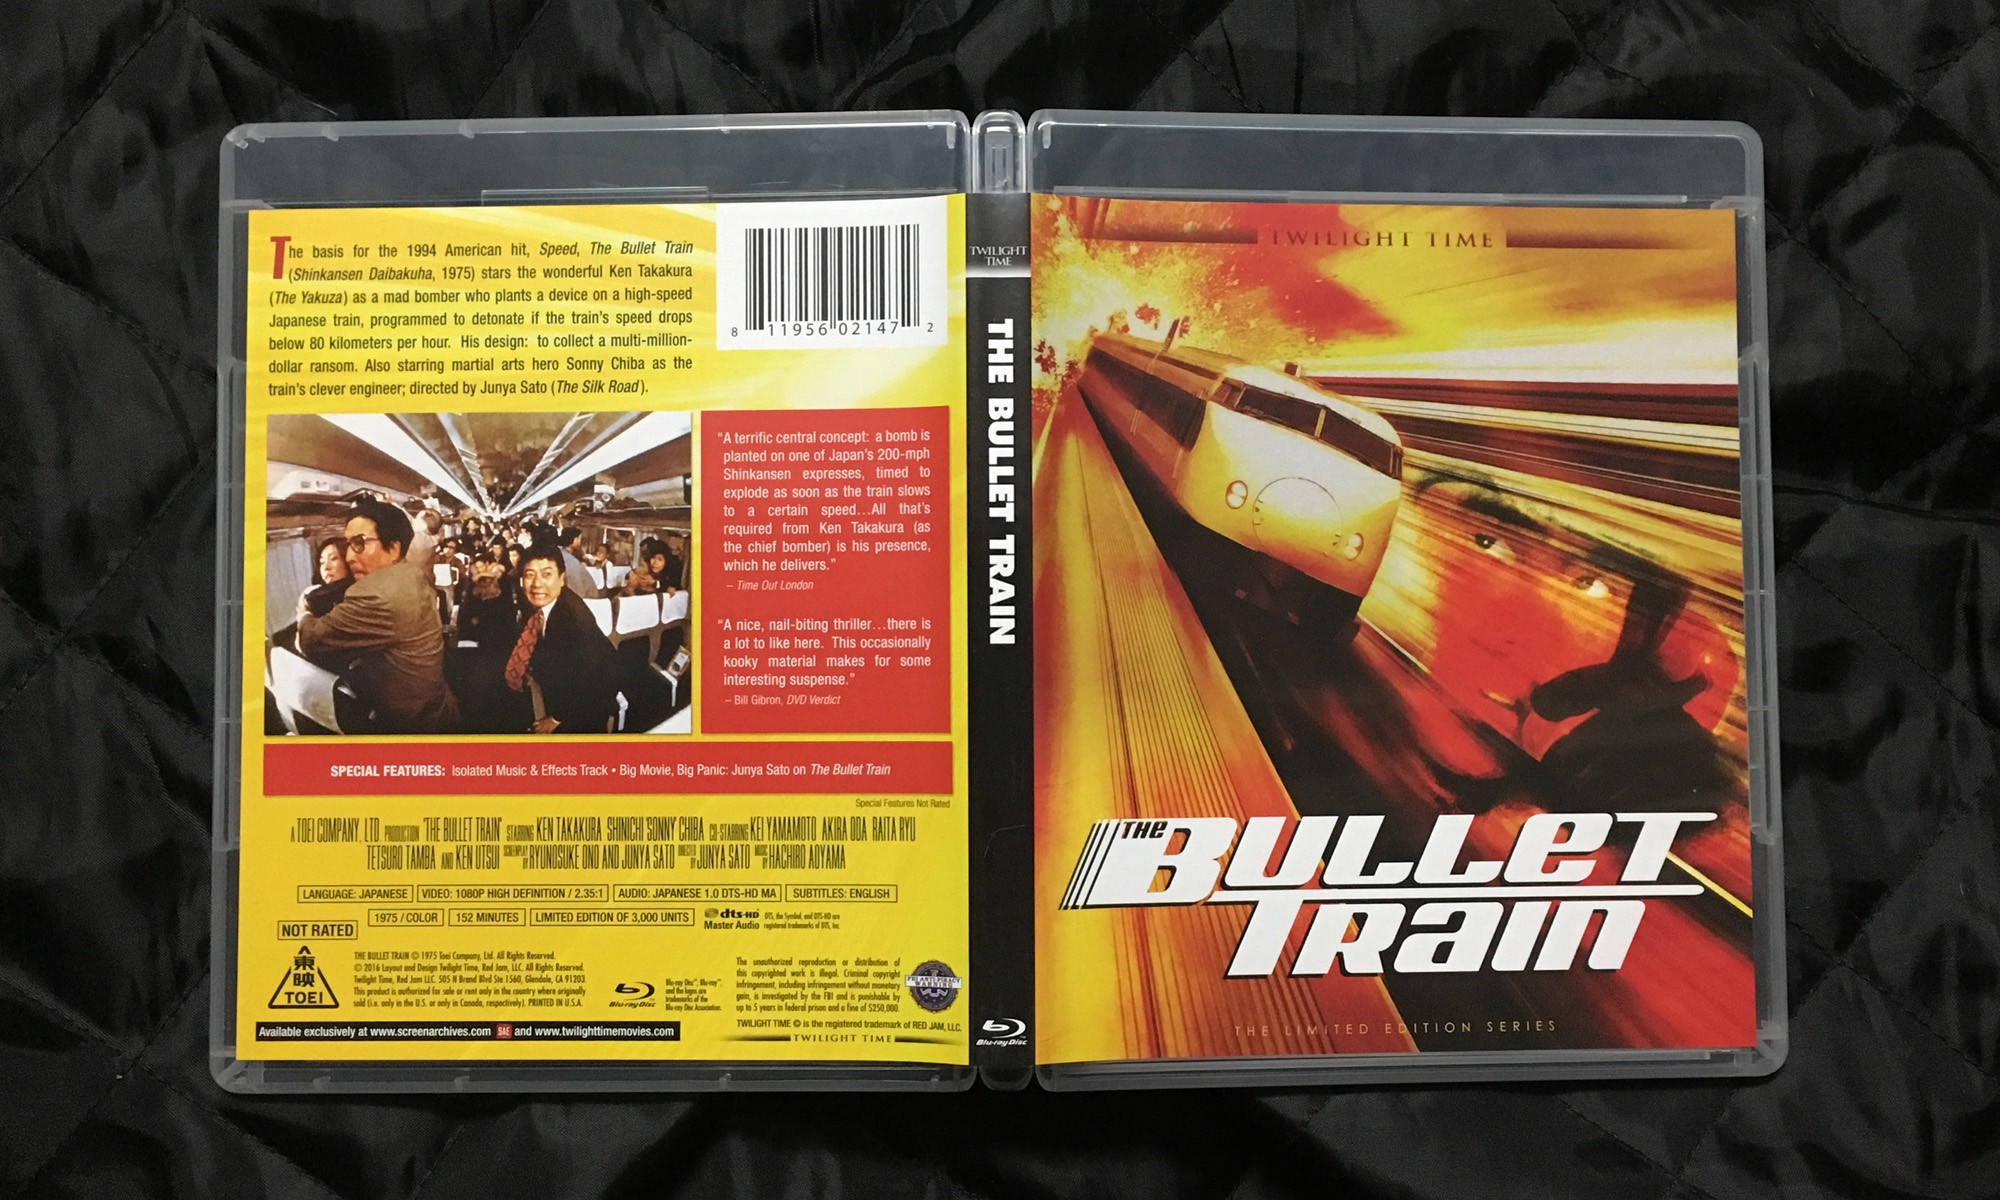 THE BULLET TRAIN — The Film That Inspired SPEED [Blu-ray Review]